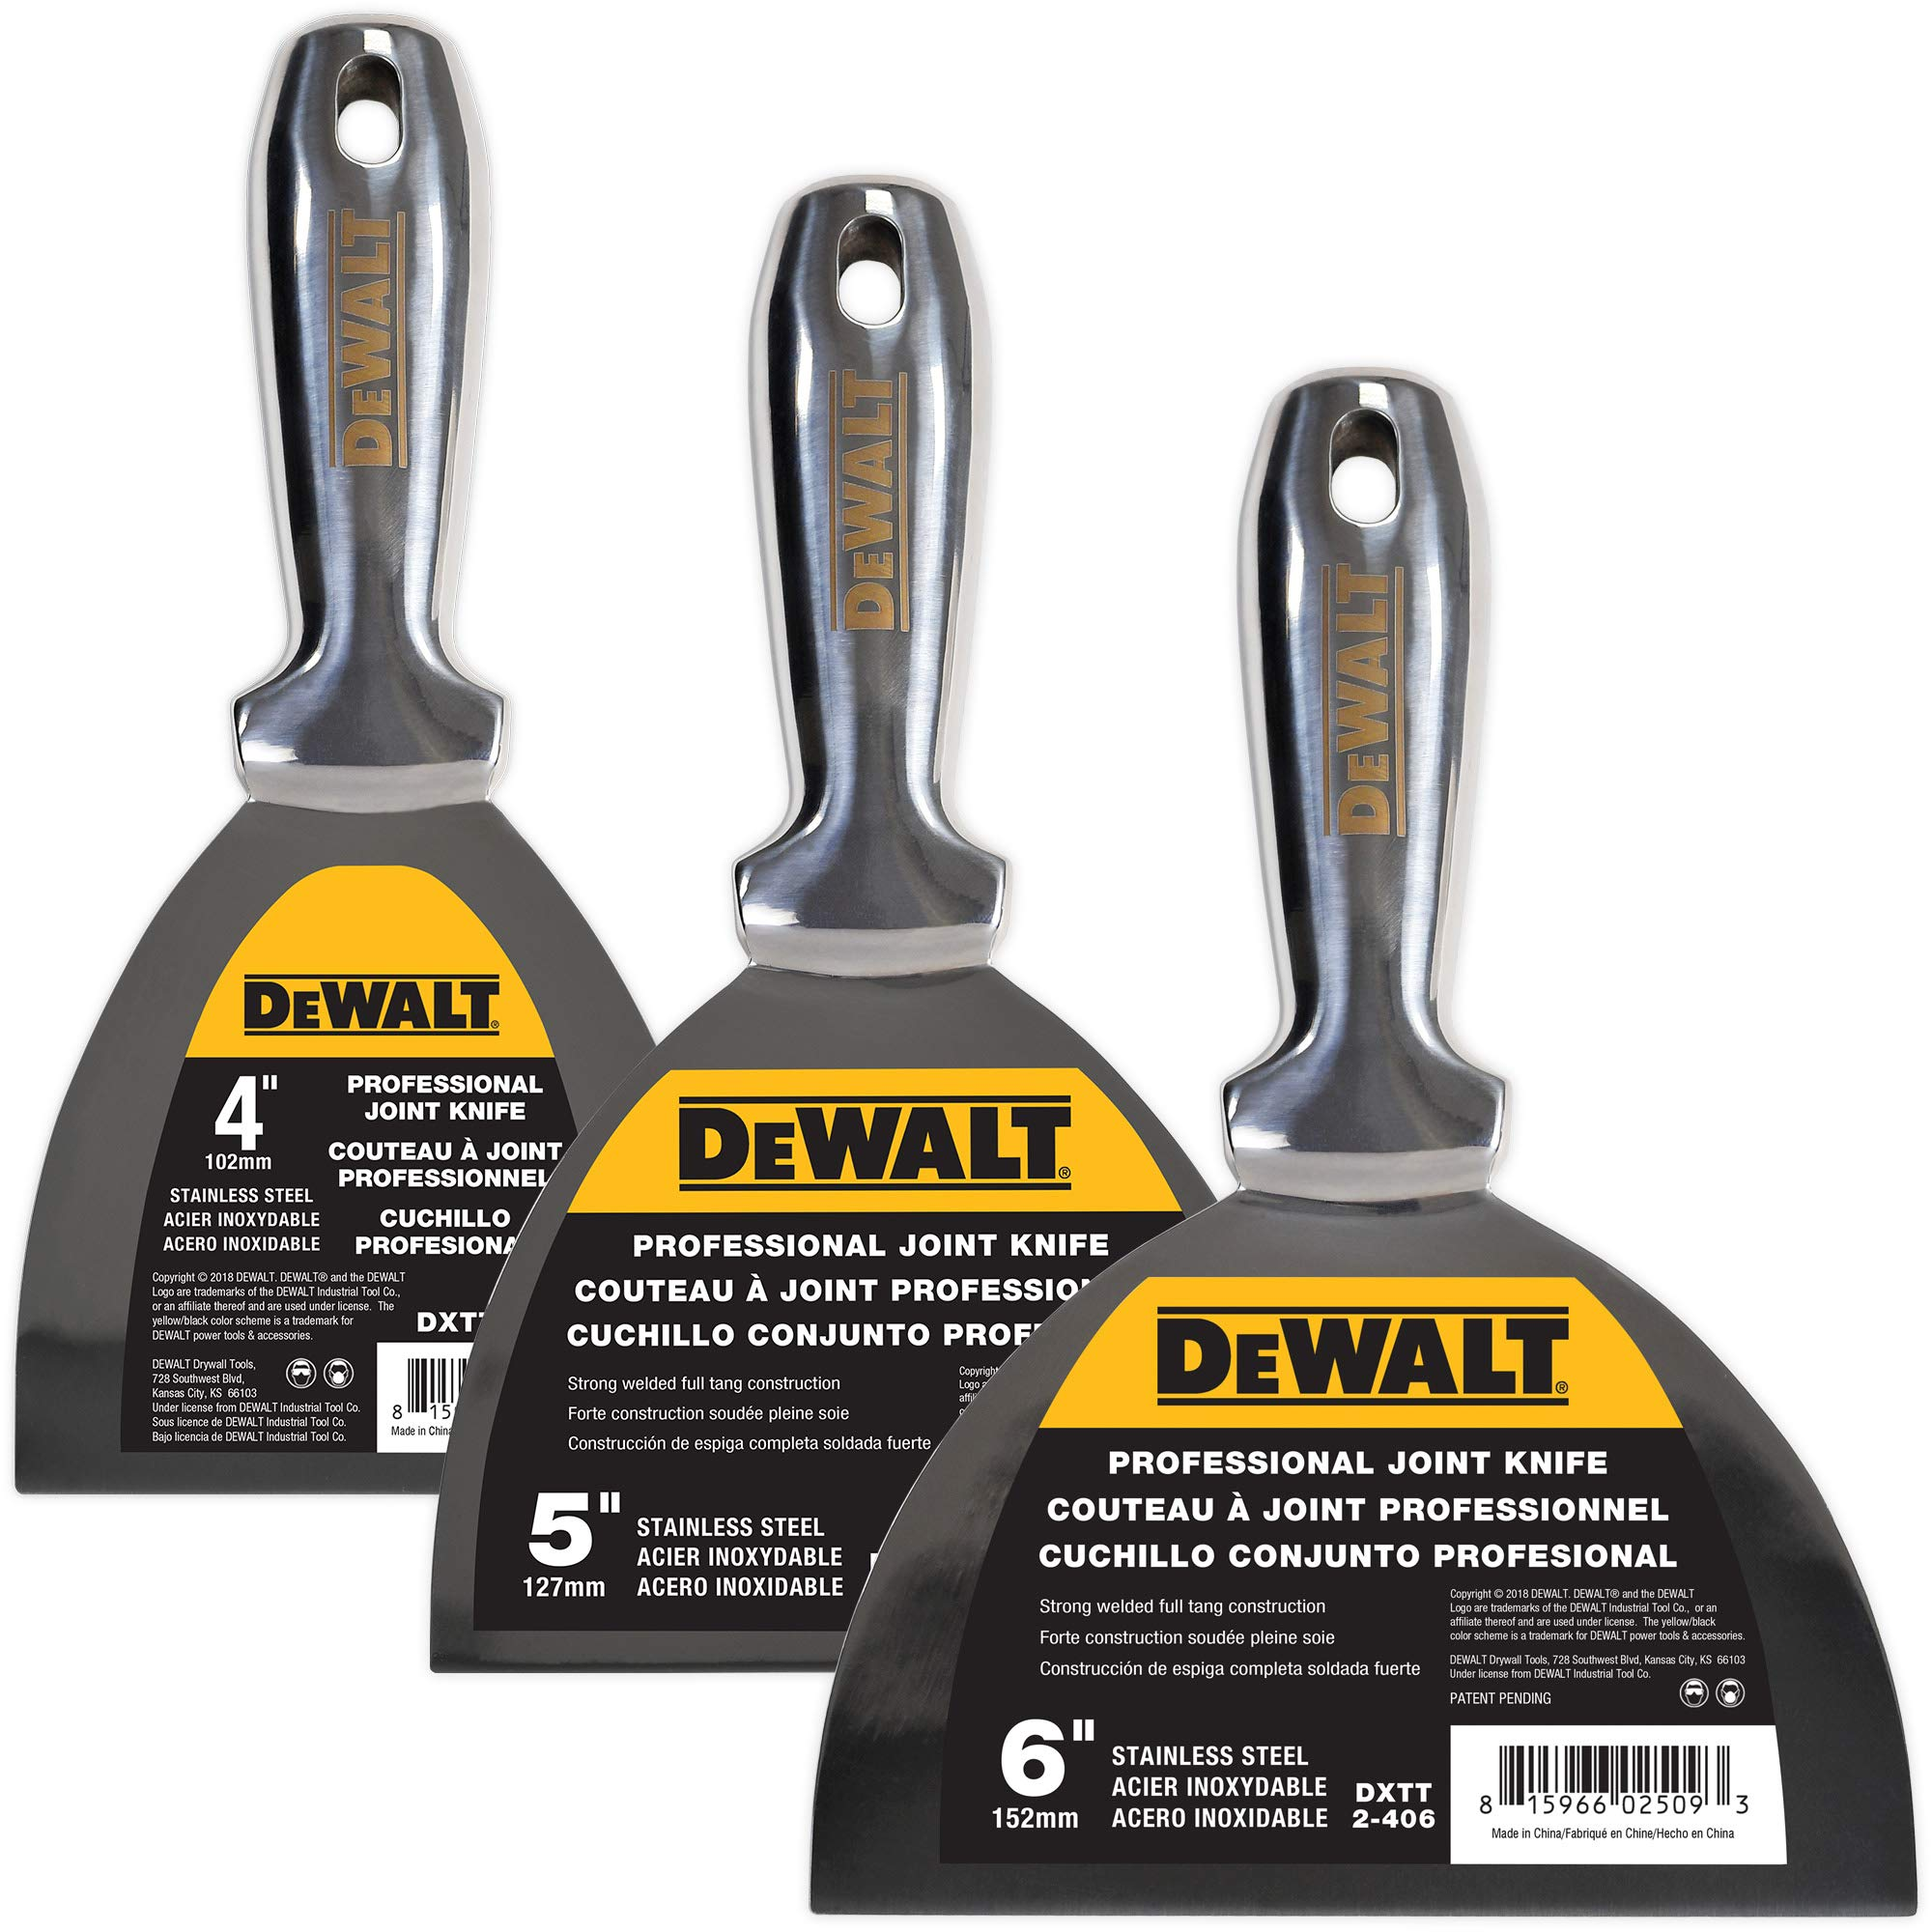 DEWALT One Piece Stainless Steel Joint Knife 3-Pack | Professional Grade Putty Blade, Premium Polished All-Metal, Precision Ground Edge, Ergonomic, Corrosion Resistant, Outstanding Durability | 3-450 by DEWALT